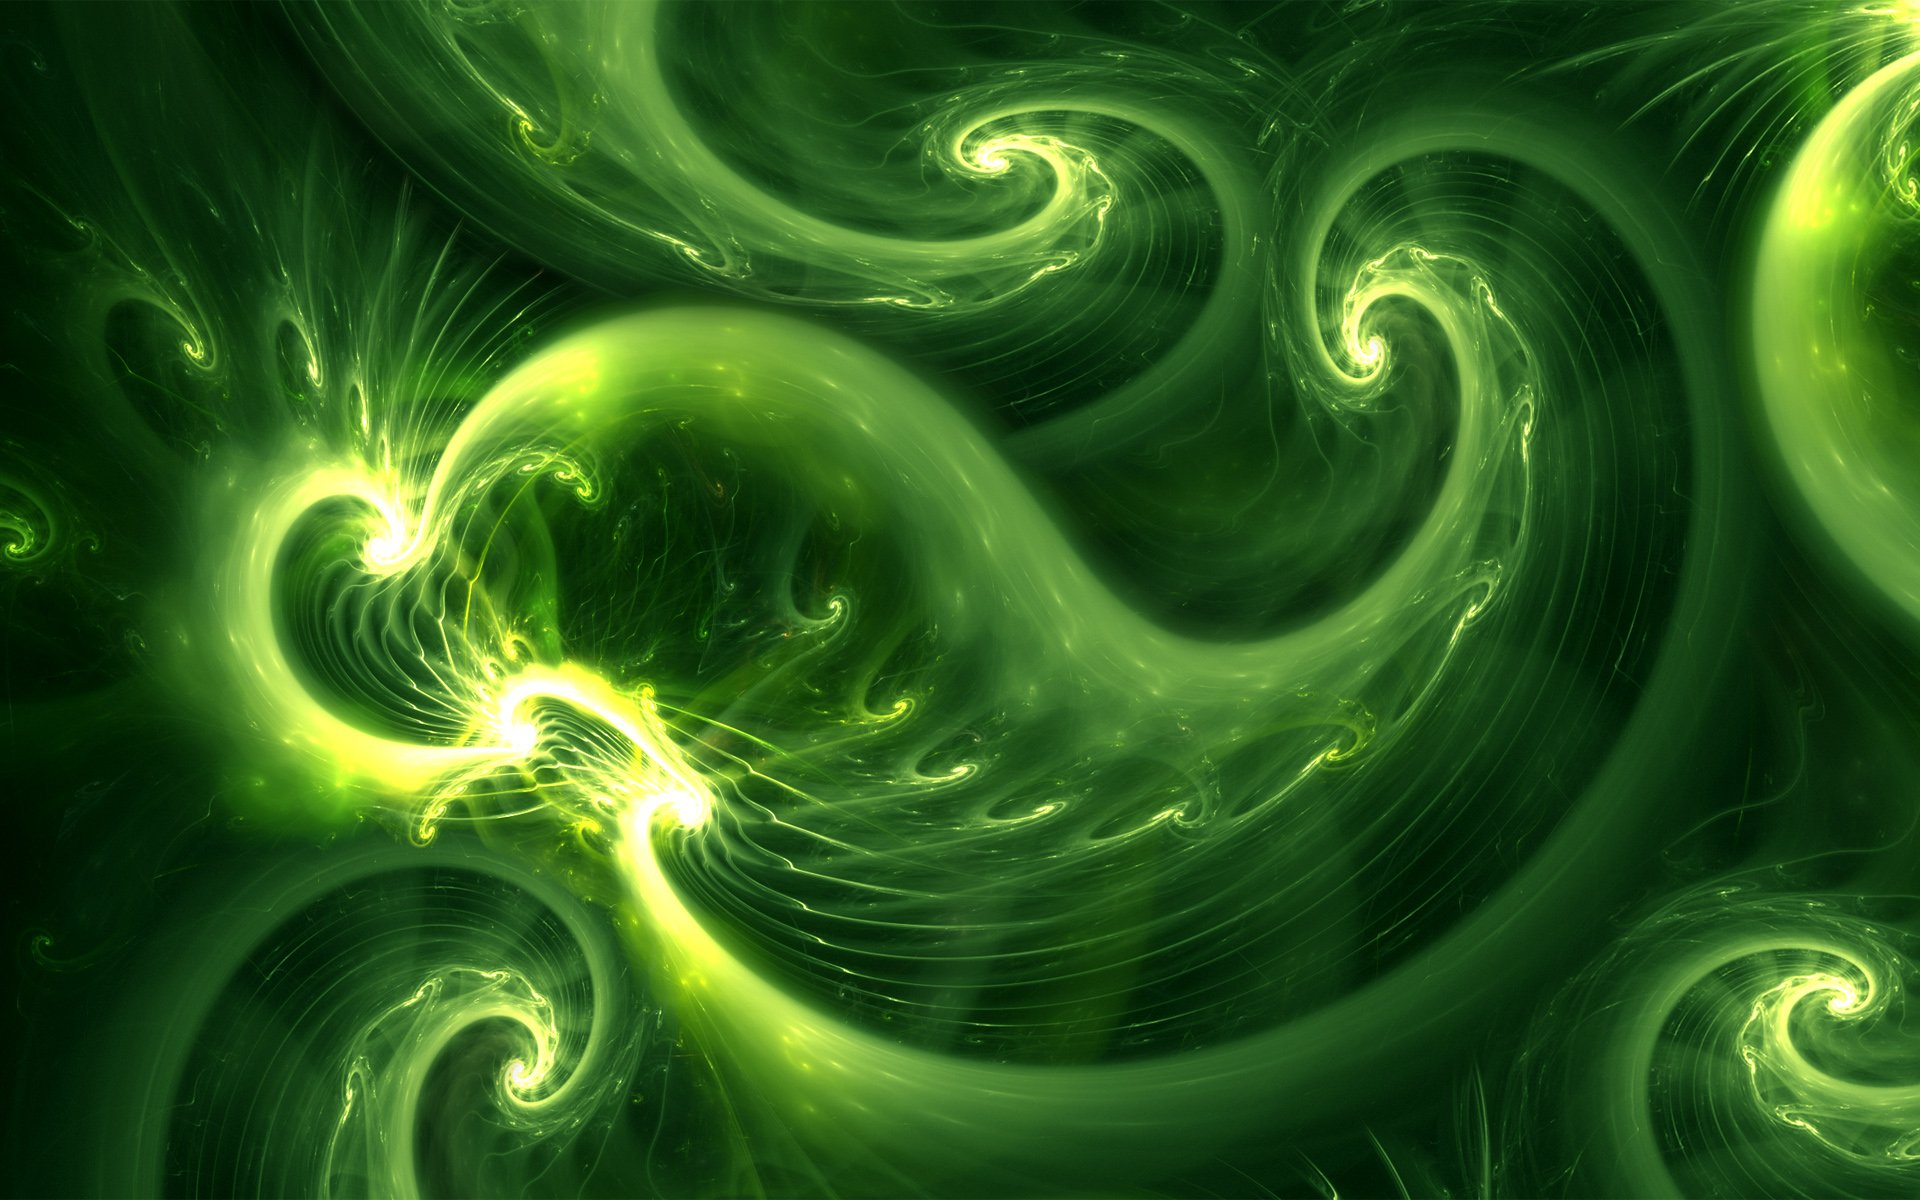 Abstract - Green  Colors Shapes Pattern Texture Light Artistic Abstract Wallpaper